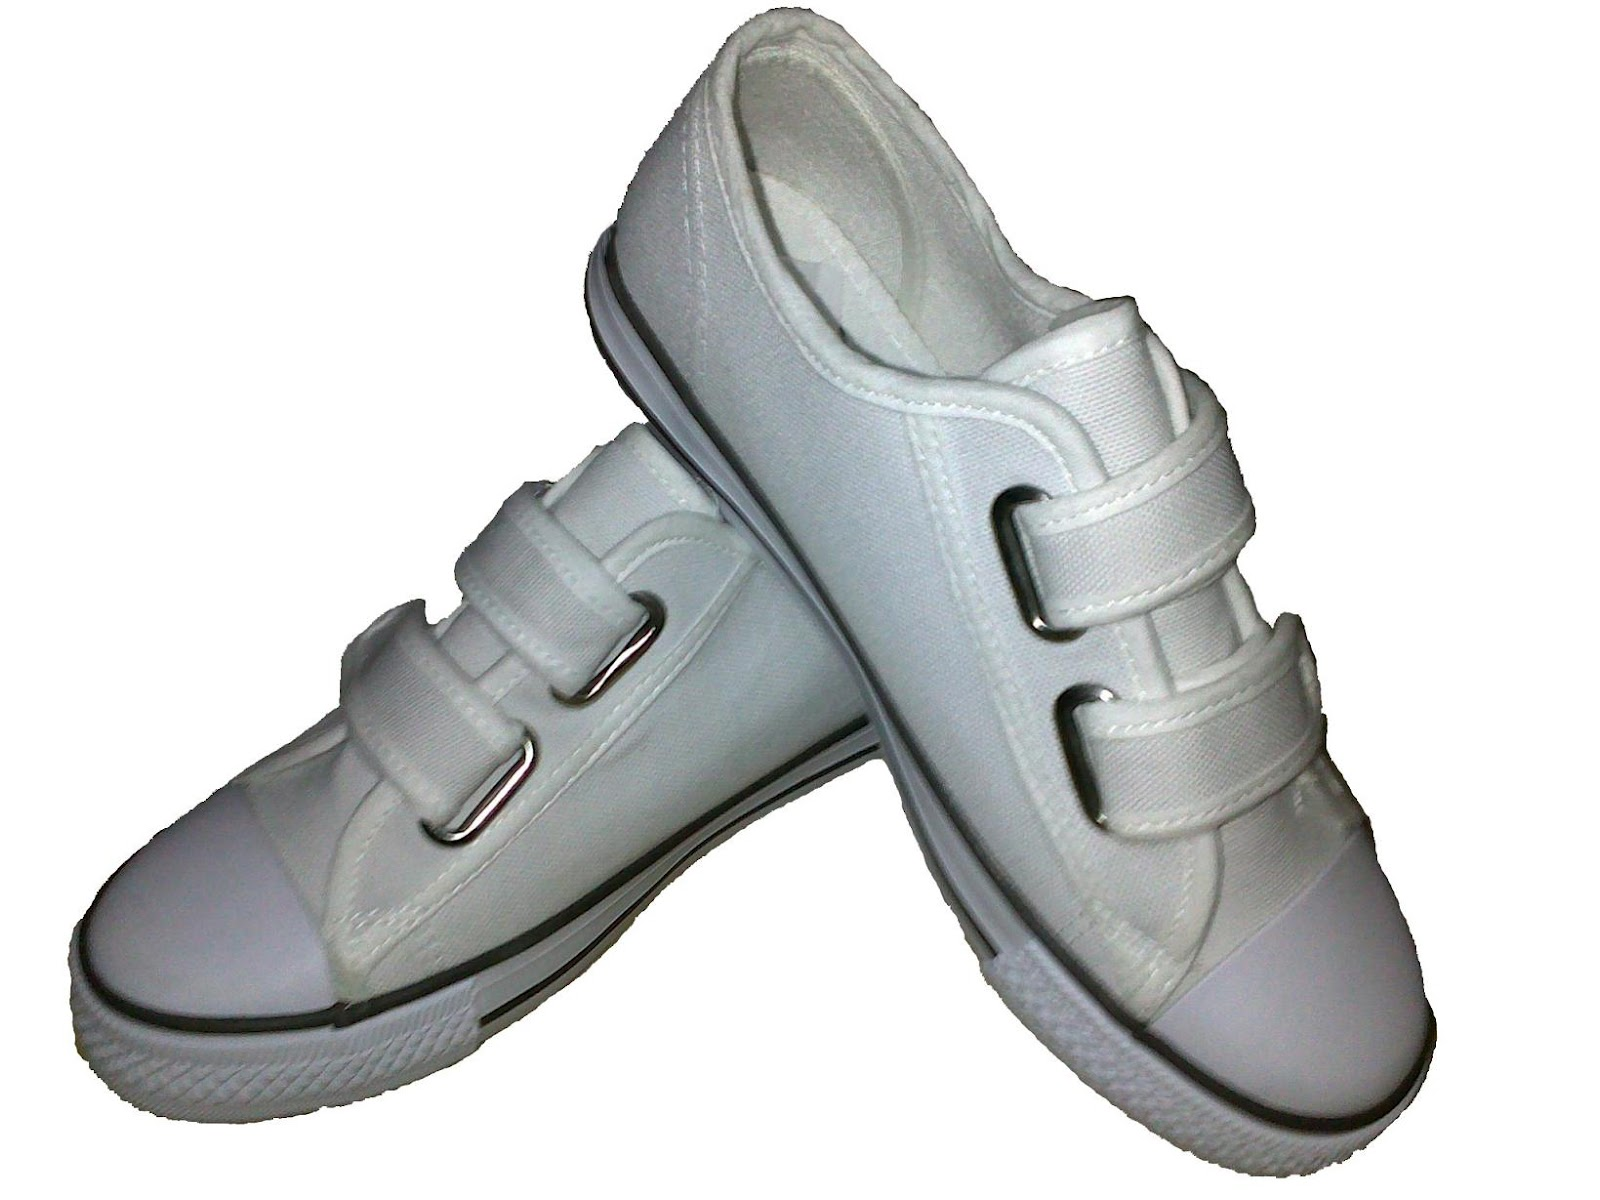 Fashionable School Shoes For Small Feet